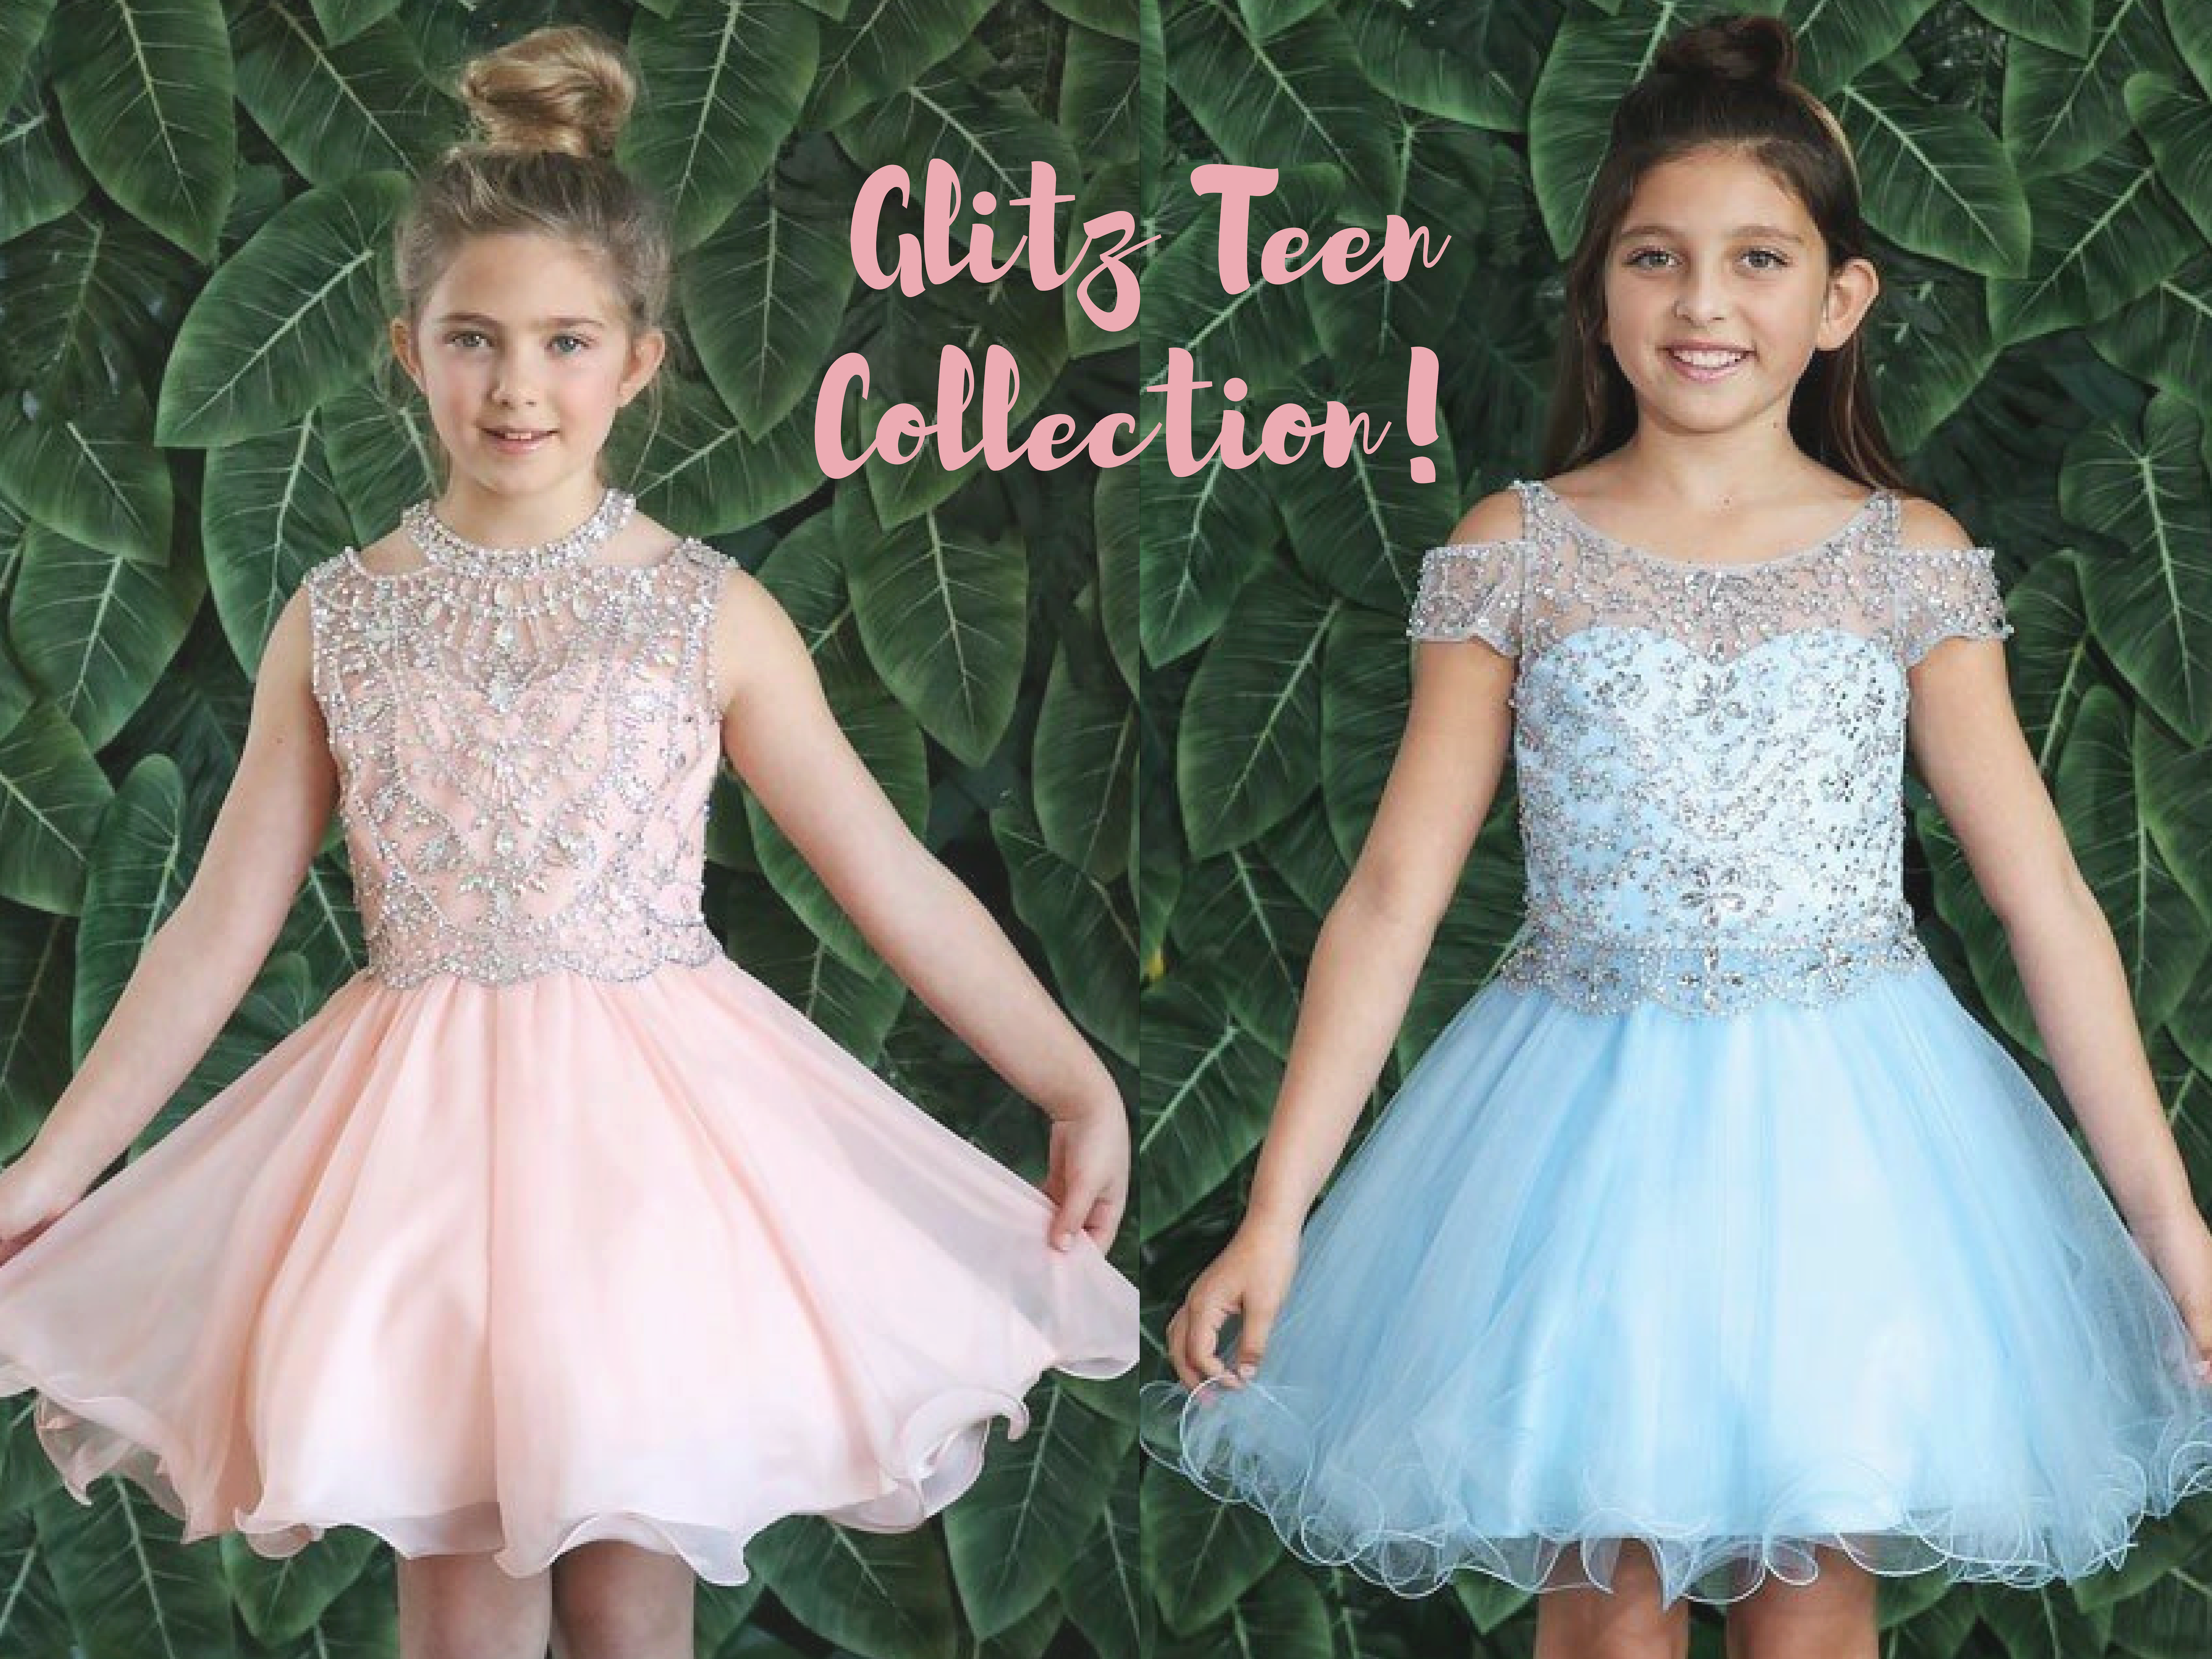 glitz-teen-collection.png